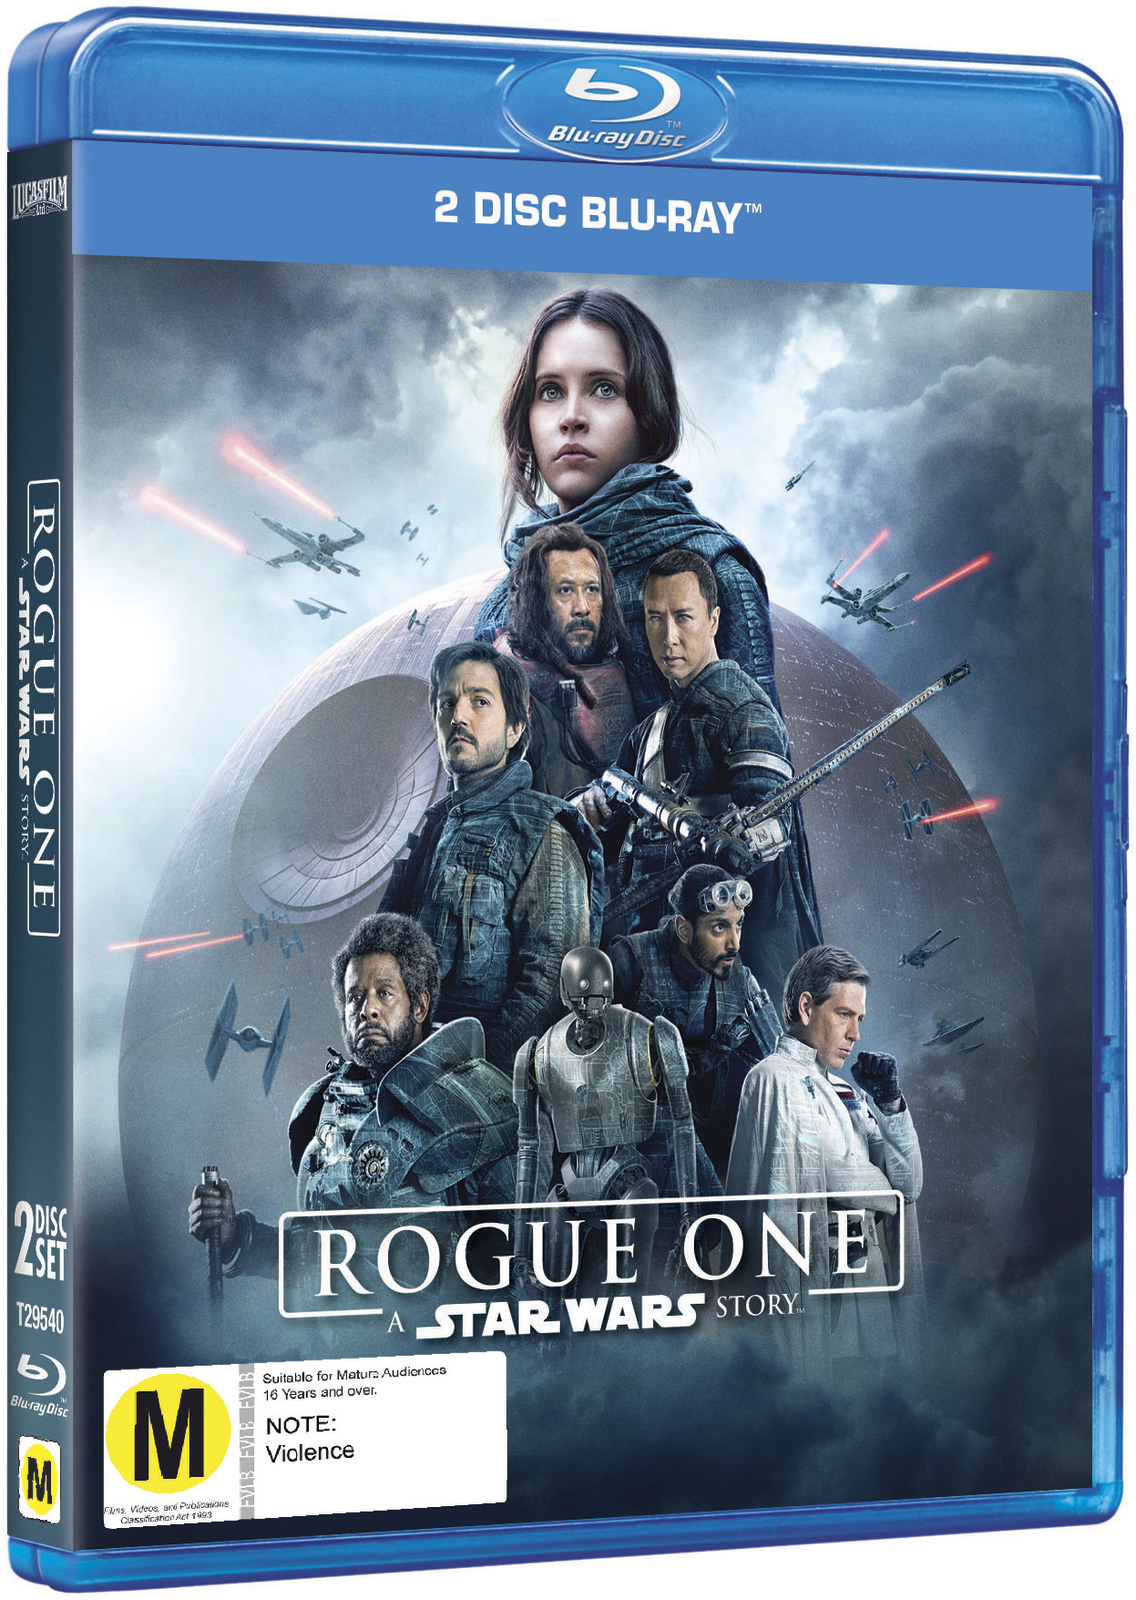 Rogue One: A Star Wars Story on Blu-ray image